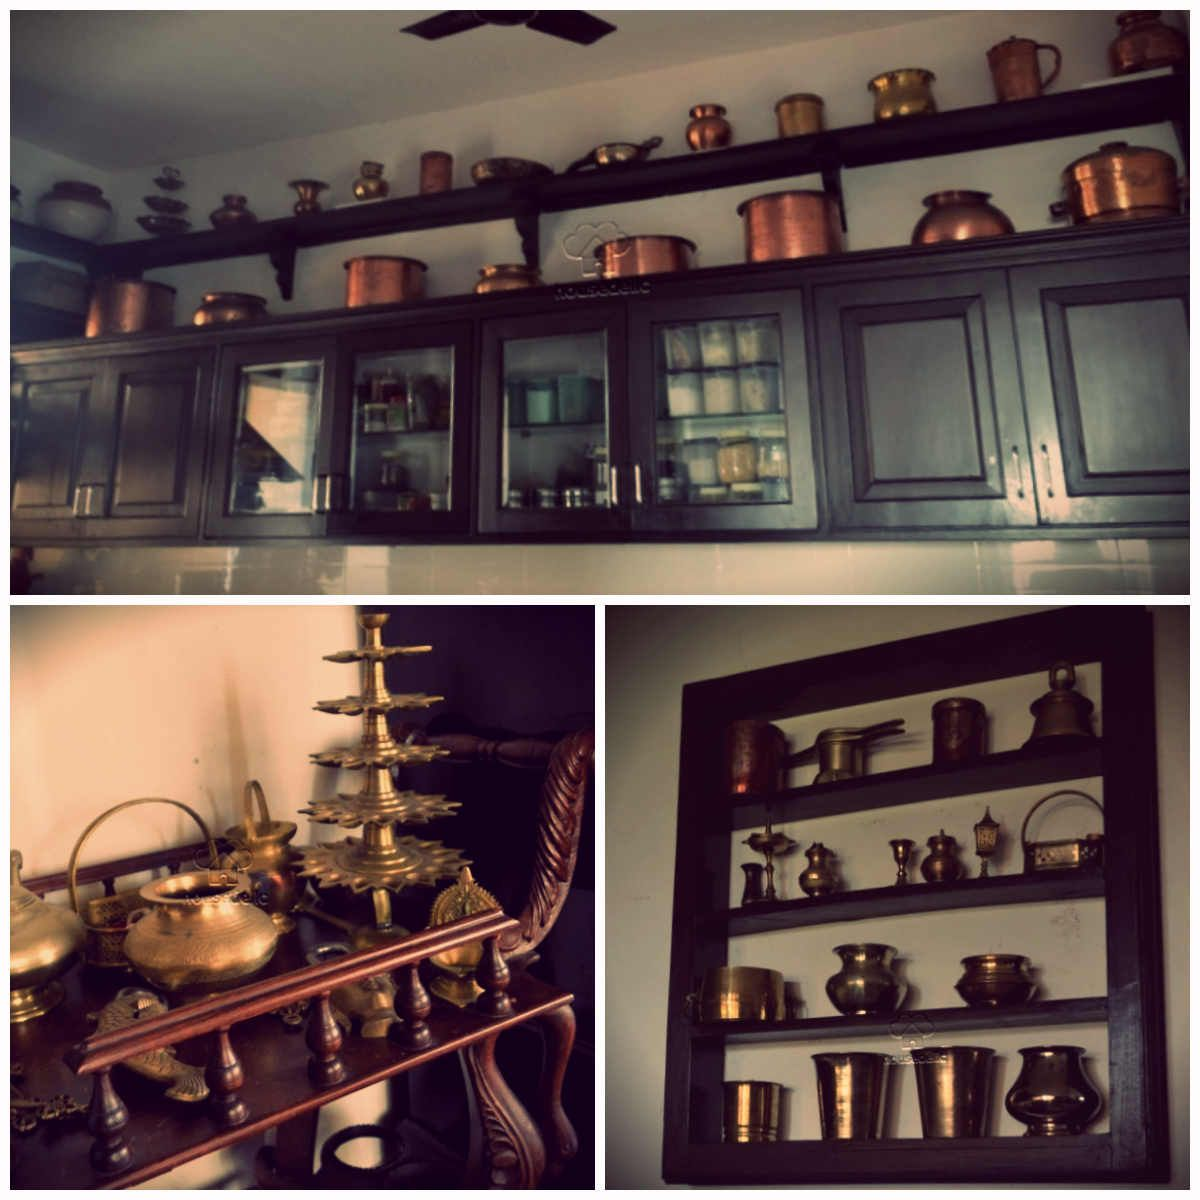 A South Indian Home With A Stunning Display Of Traditional Brass Utensils Uniquely Indian